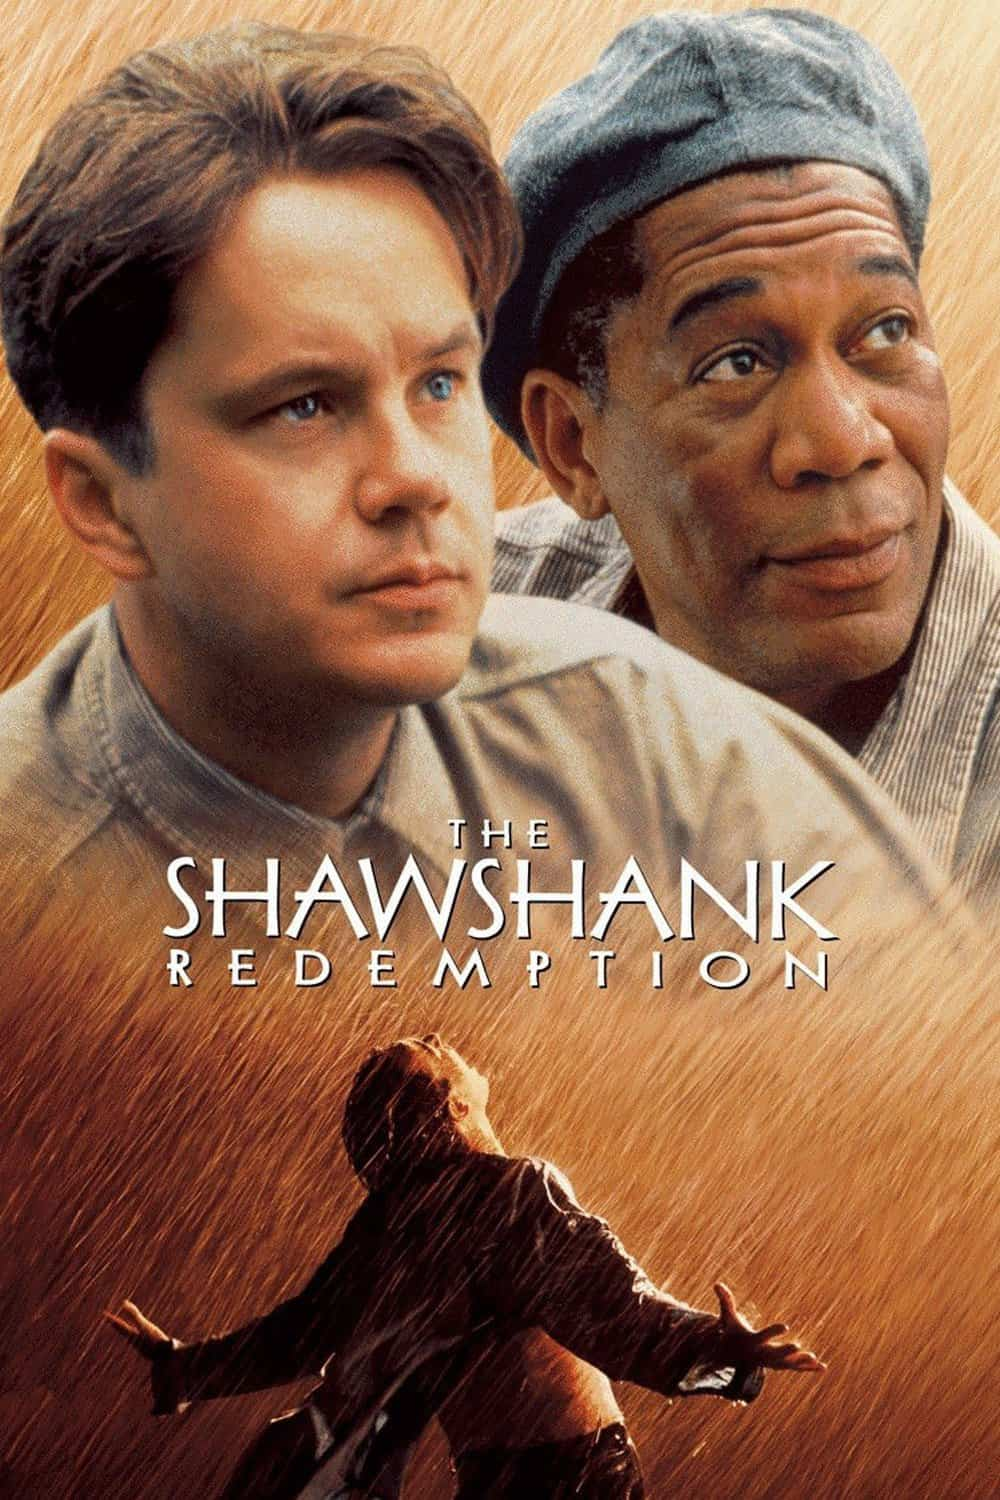 The Shawshank Redemption, 1994